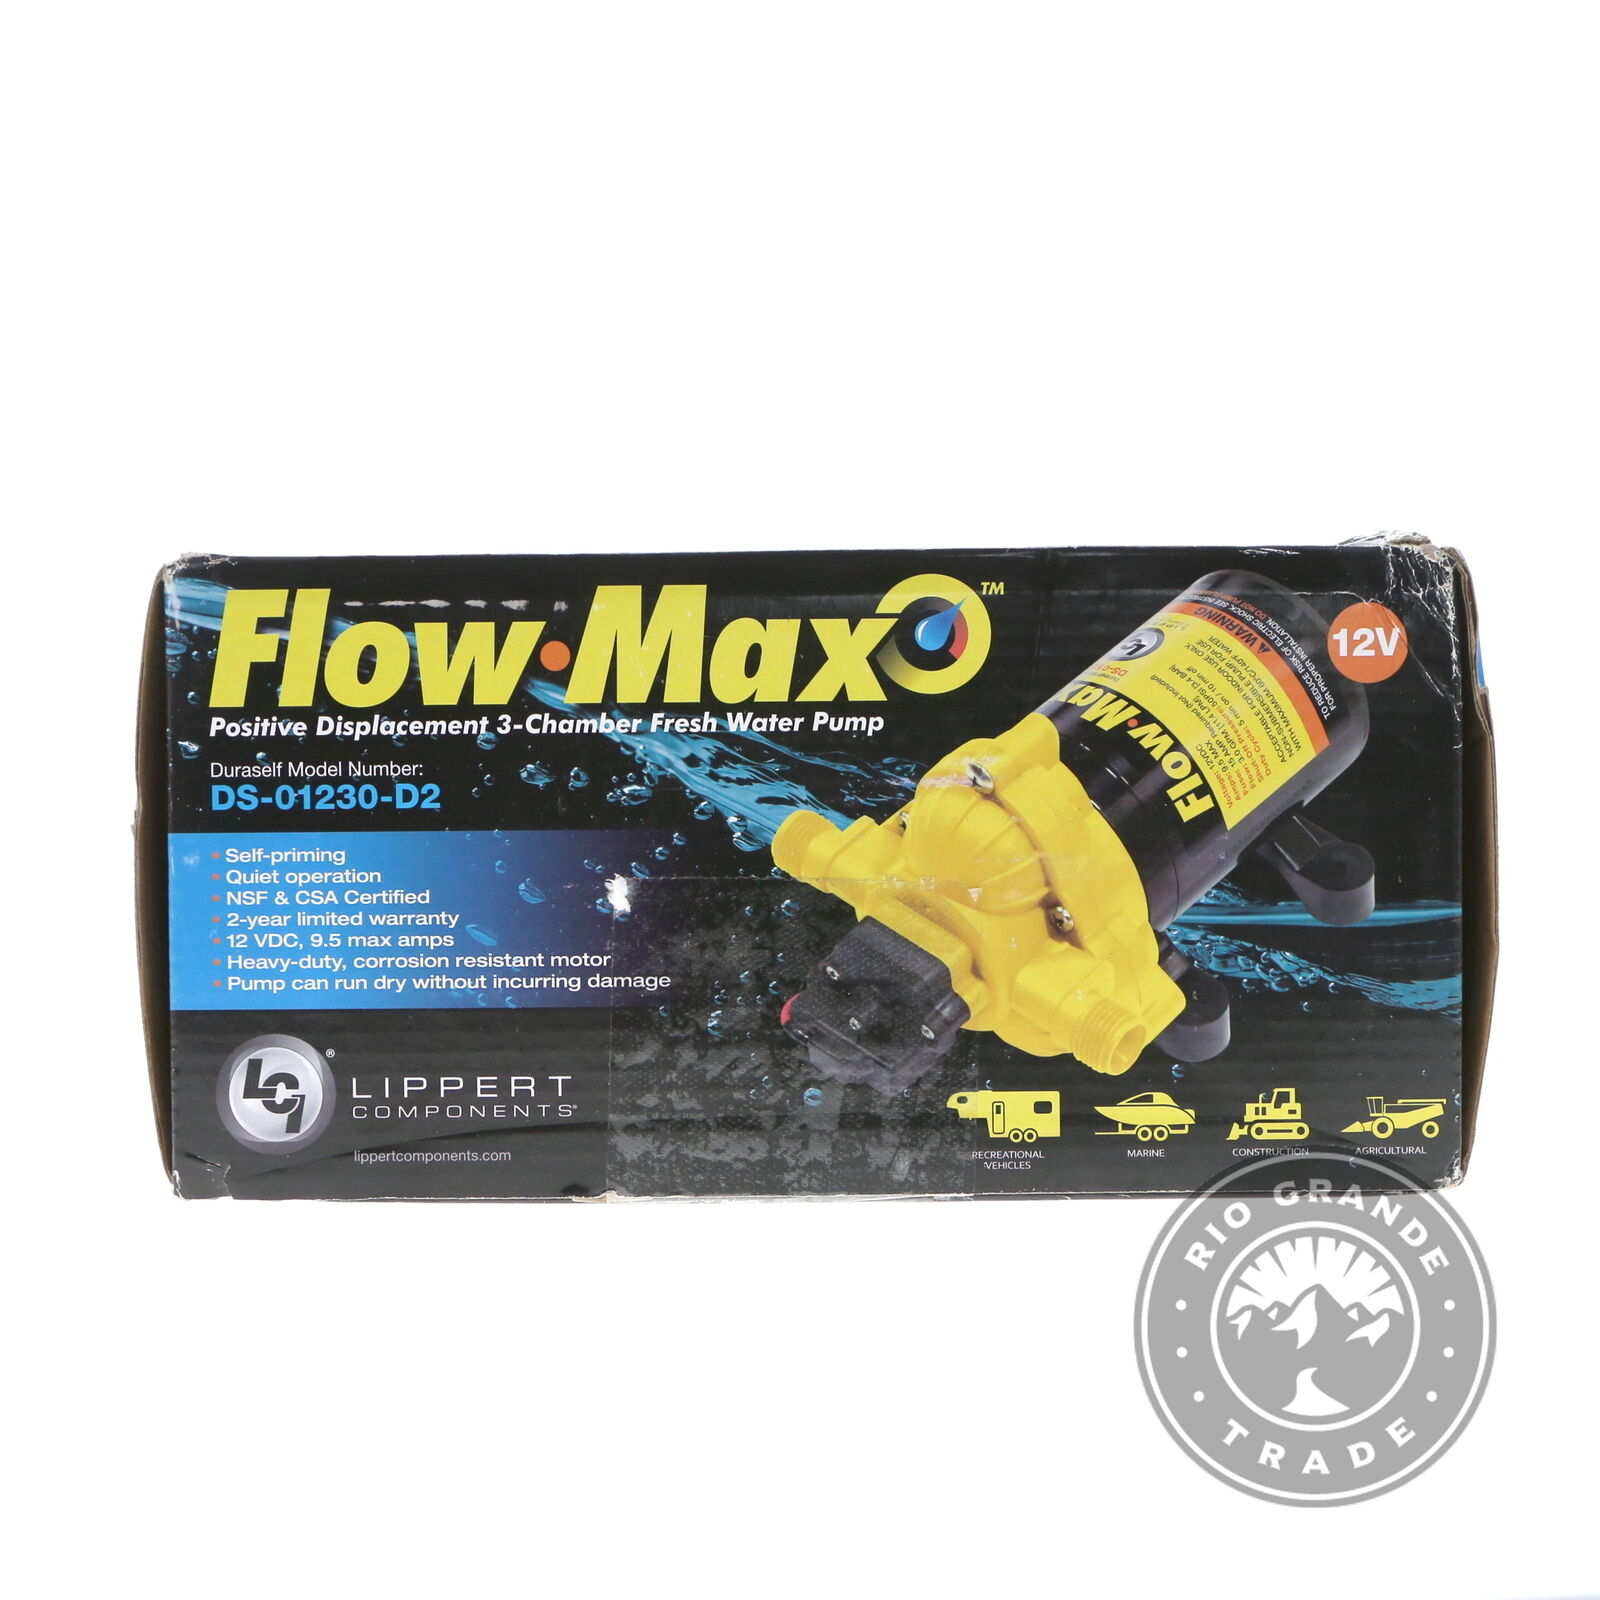 OPEN BOX Lippert Components 689052 12V Flow Max Water Pump in White / Black